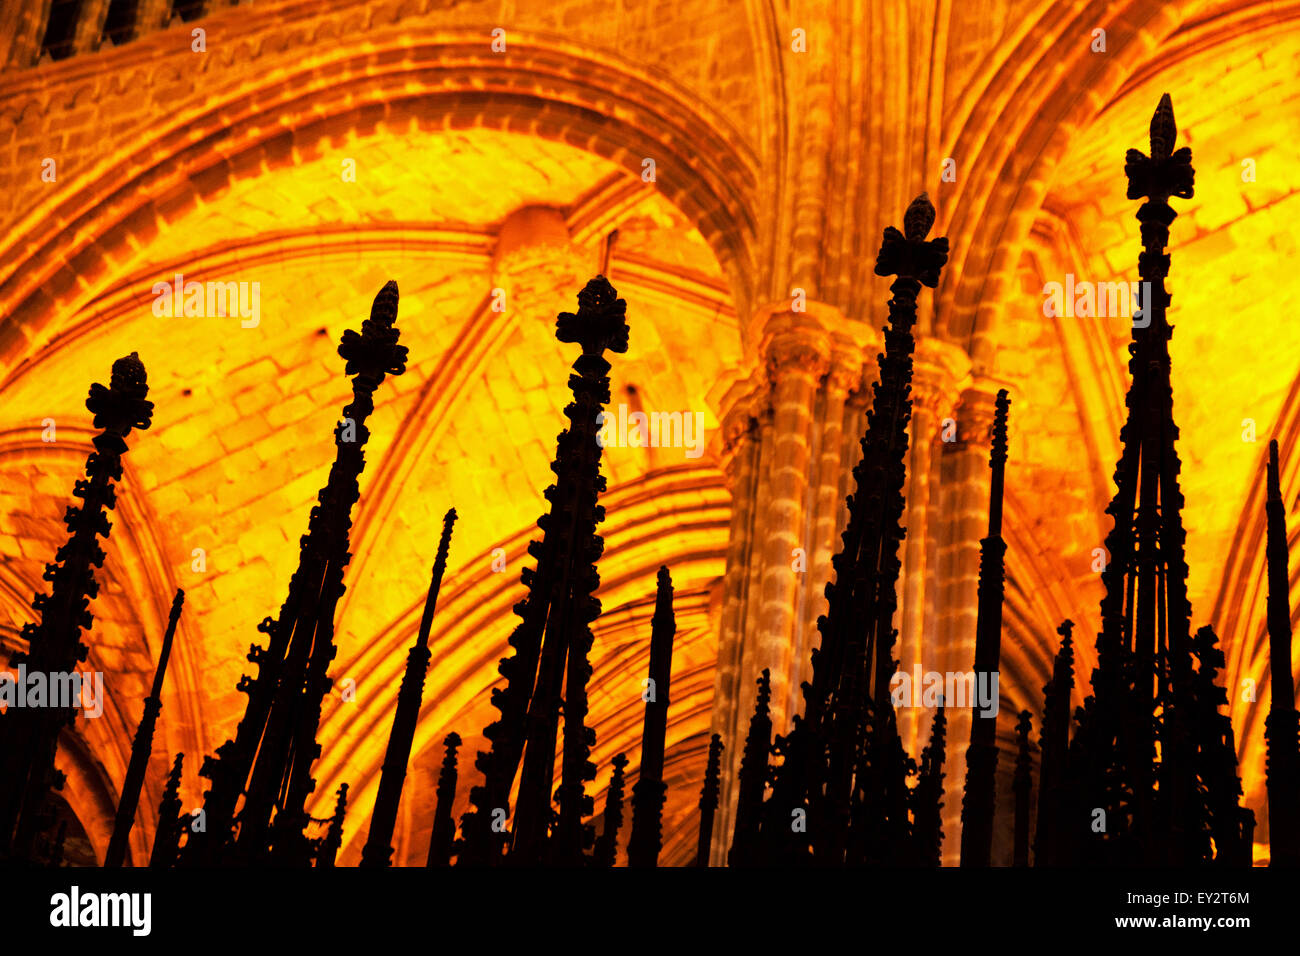 Cathedral interior, Concept - religion, Christianity, catholicism, Catholic; Barcelona Cathedral, Barcelona Spain - Stock Image